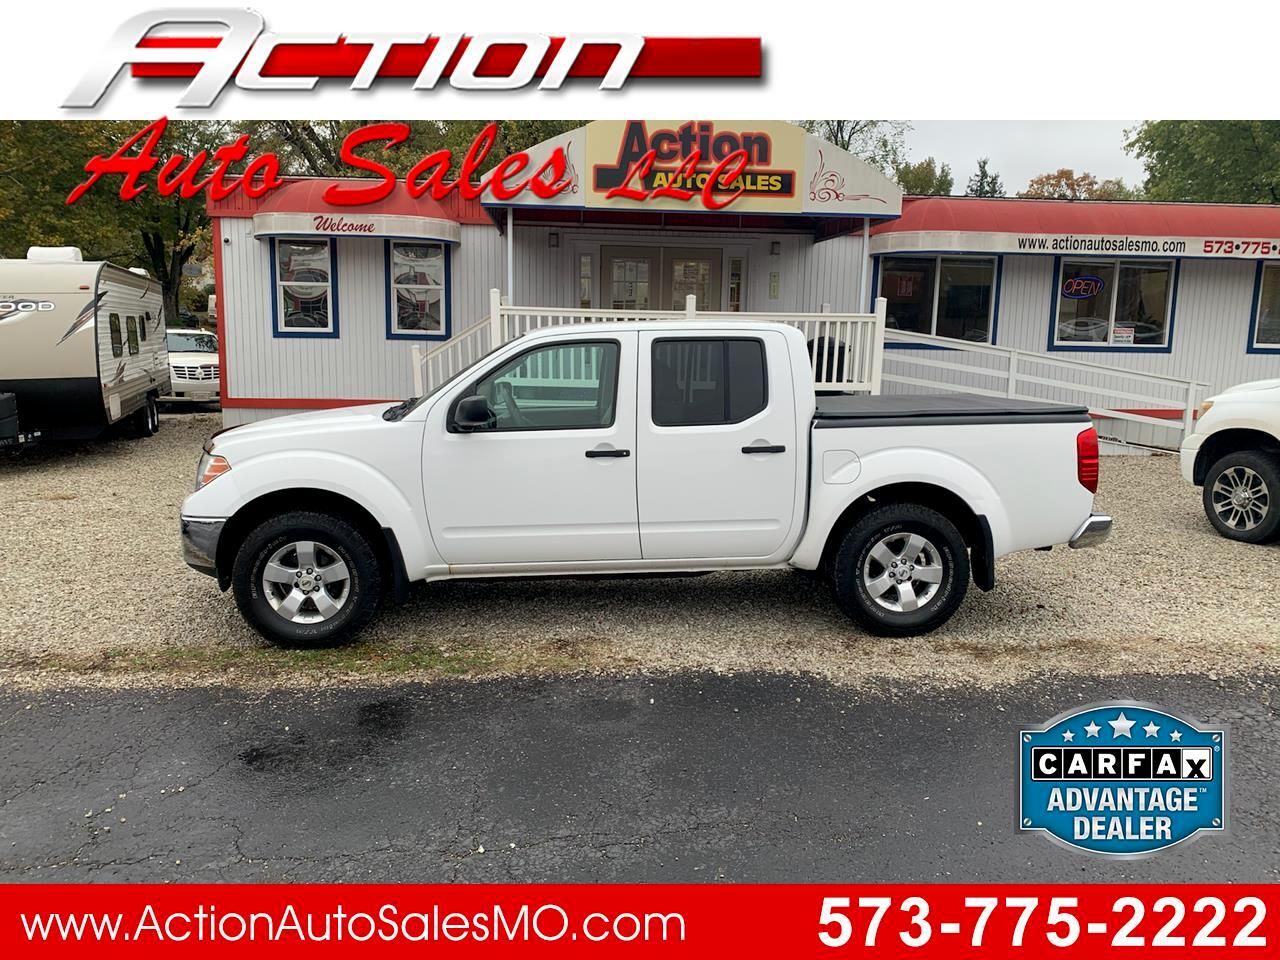 used 2010 nissan frontier 4wd crew cab swb auto se for sale in steelville mo 65565 action auto sales llc used 2010 nissan frontier 4wd crew cab